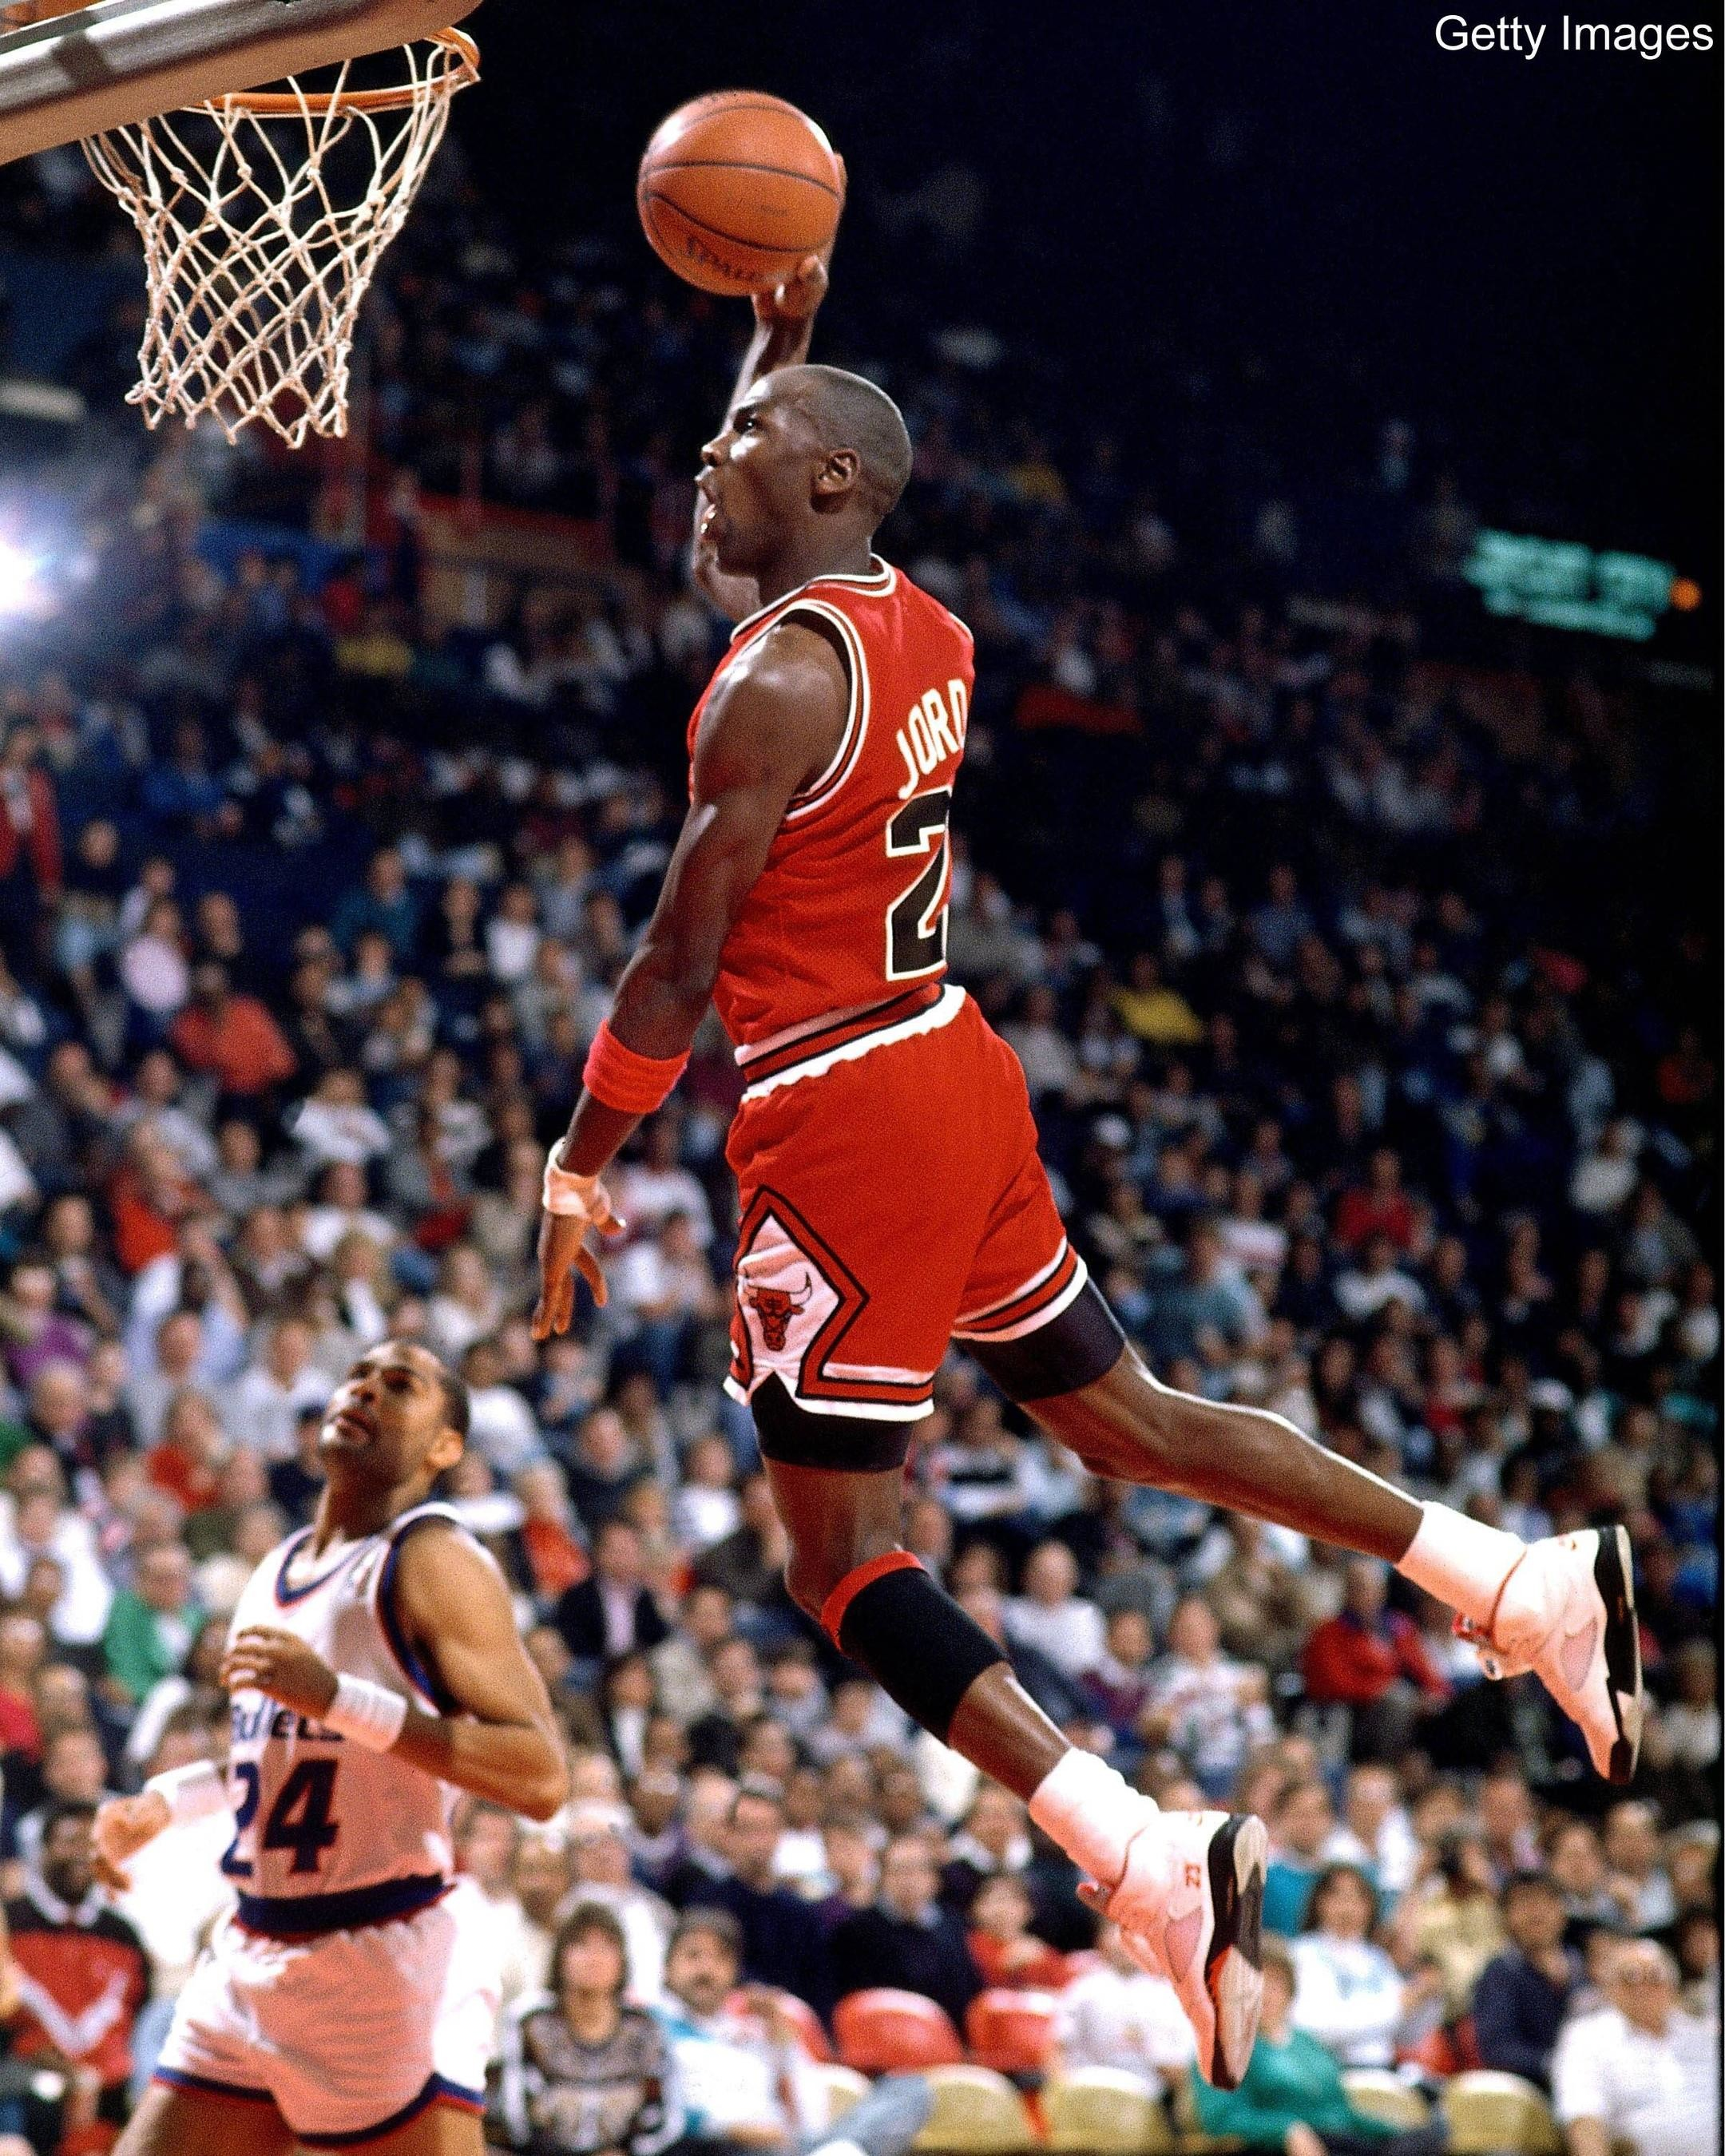 Michael Jordan Hd Wallpaper 71 Images